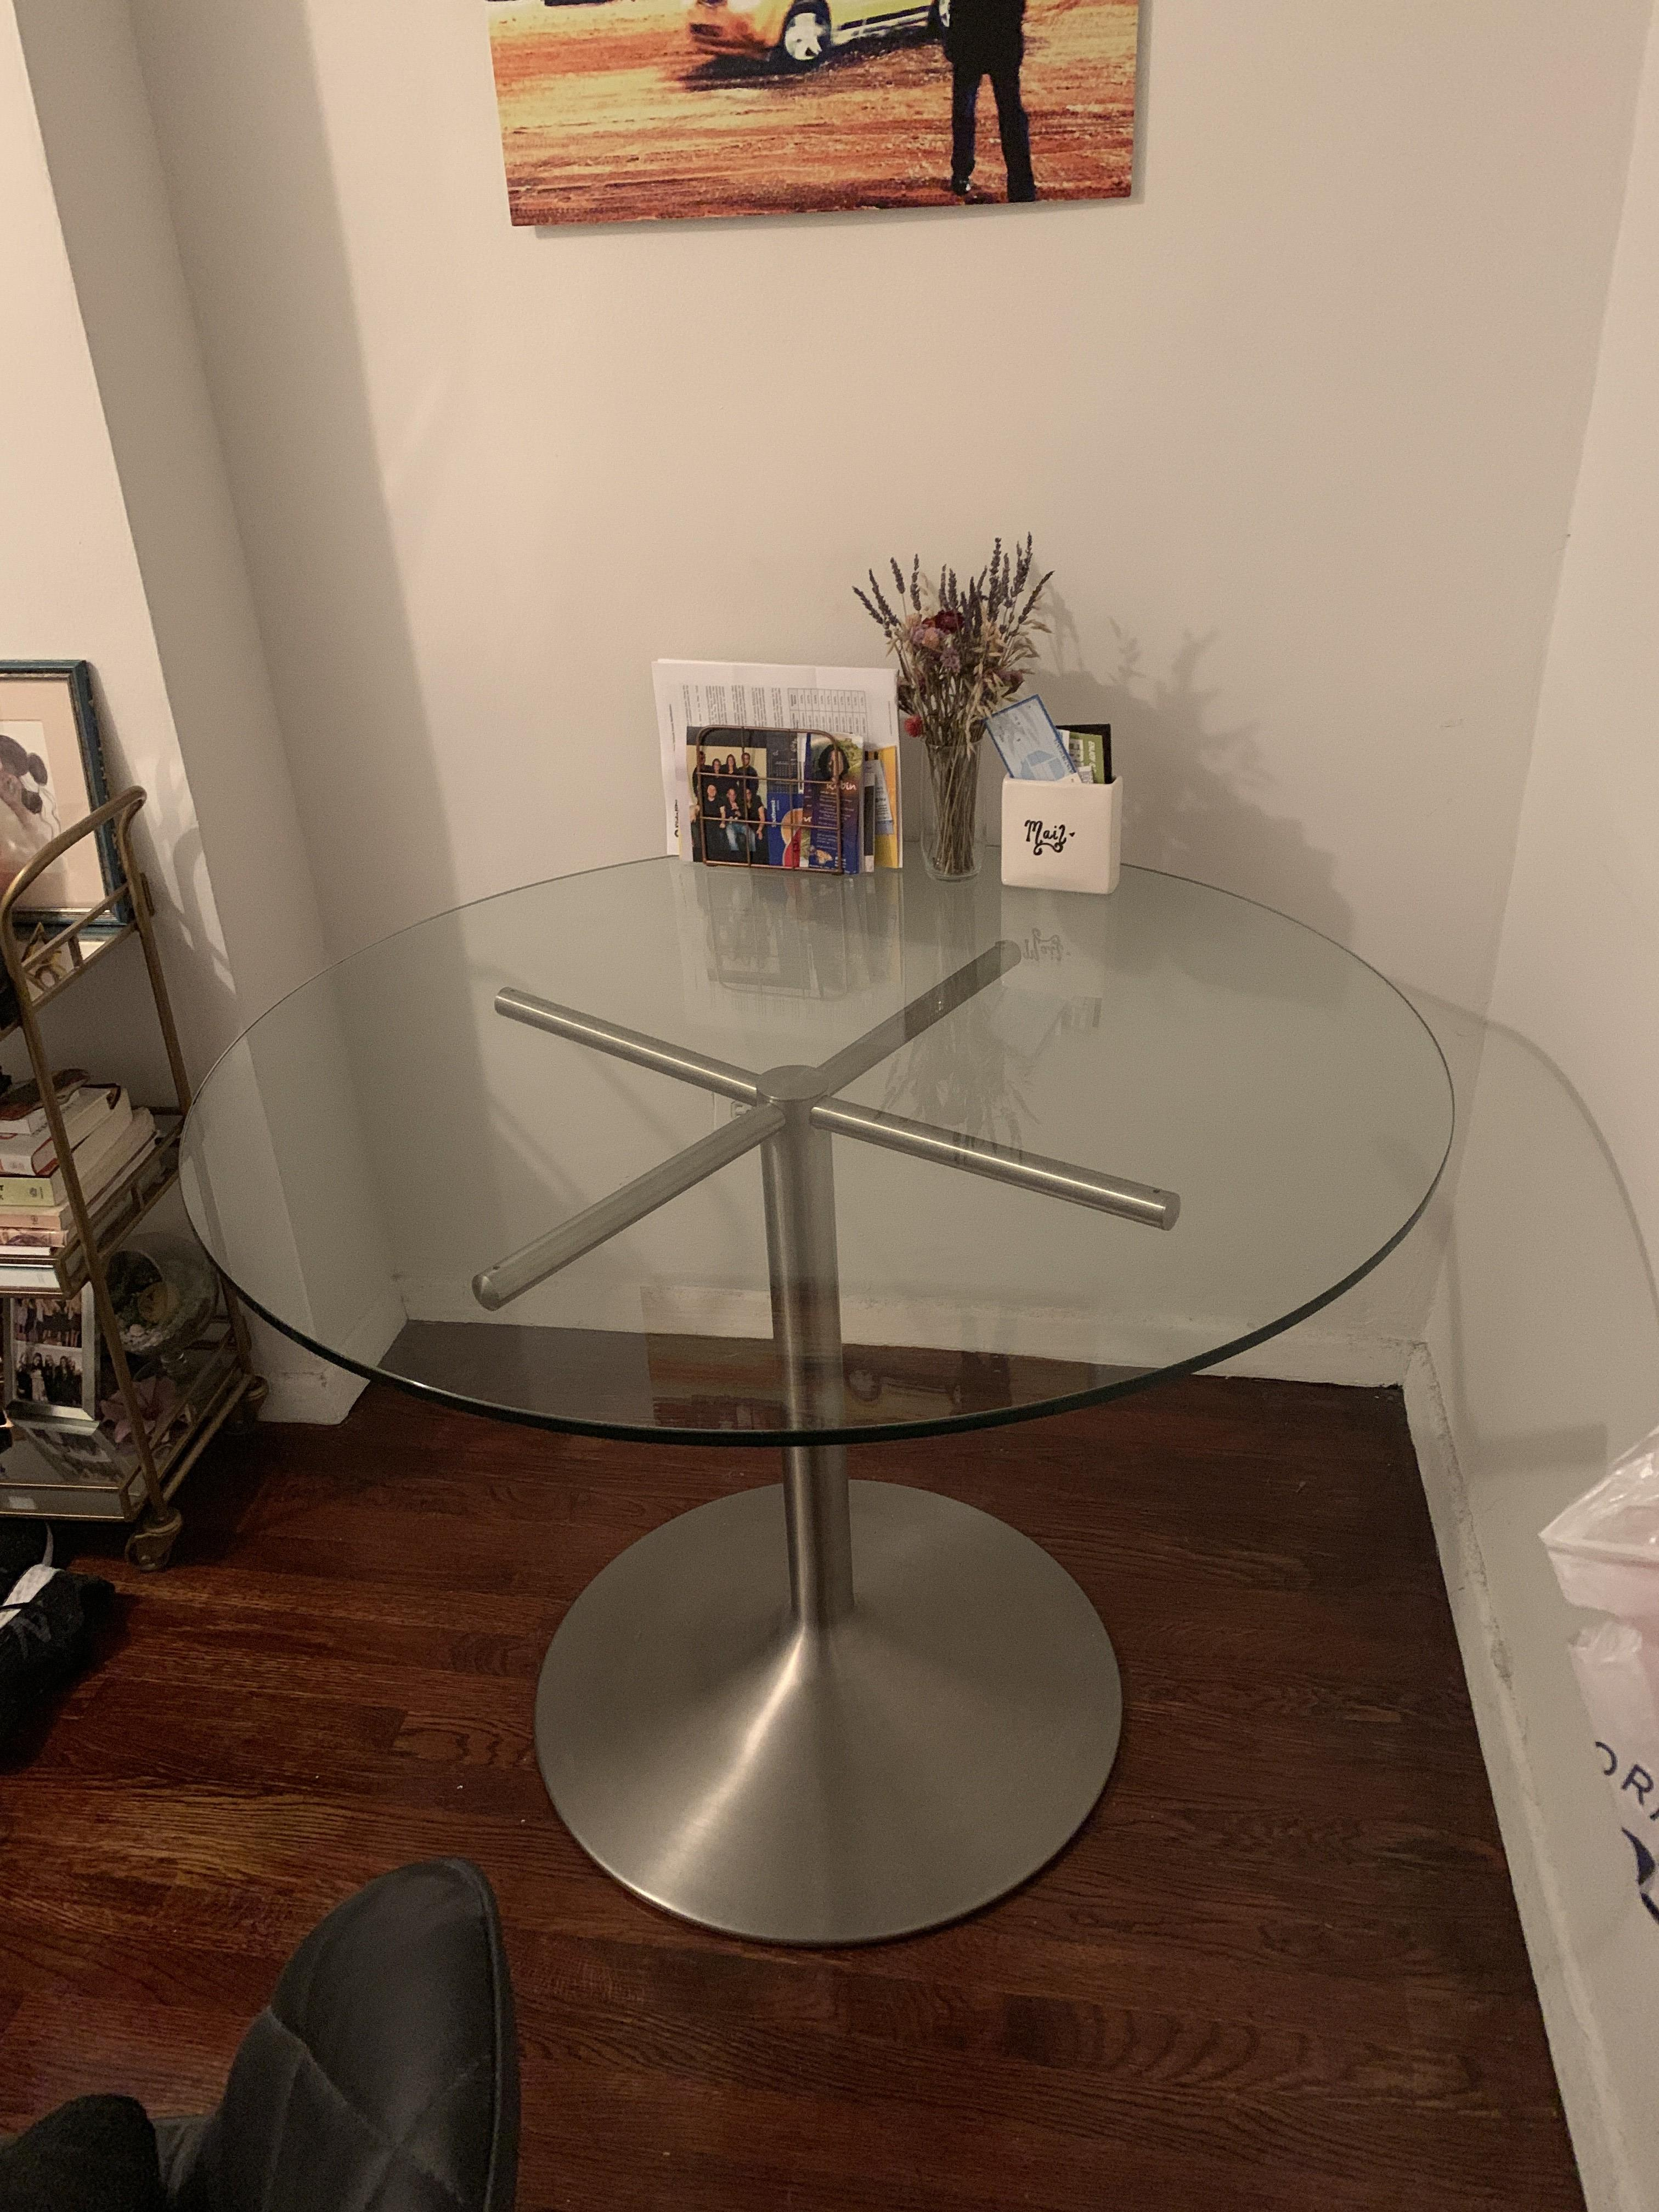 Room & Board Glass Round Table w/ Stainless Steel Base